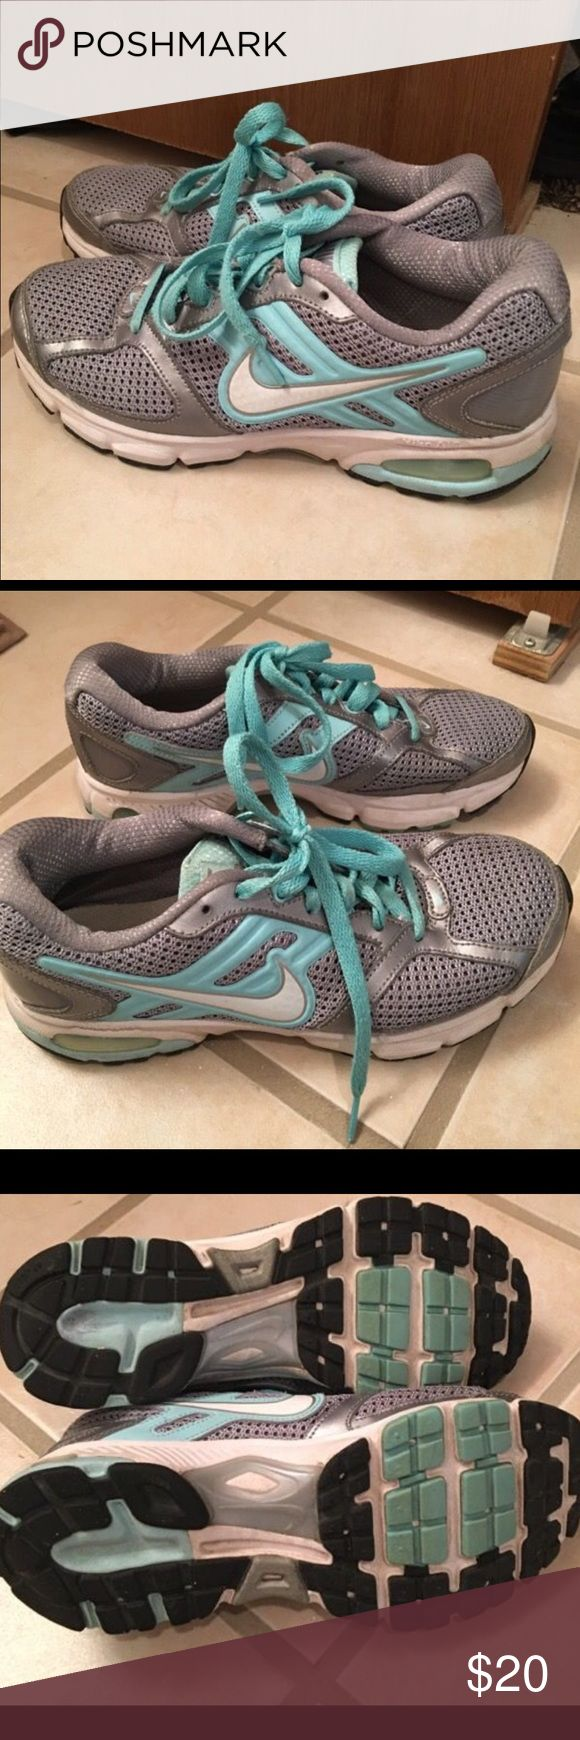 Nike shoes Women's uses but good condition Nike shoes size 8. Nike Shoes Athletic Shoes